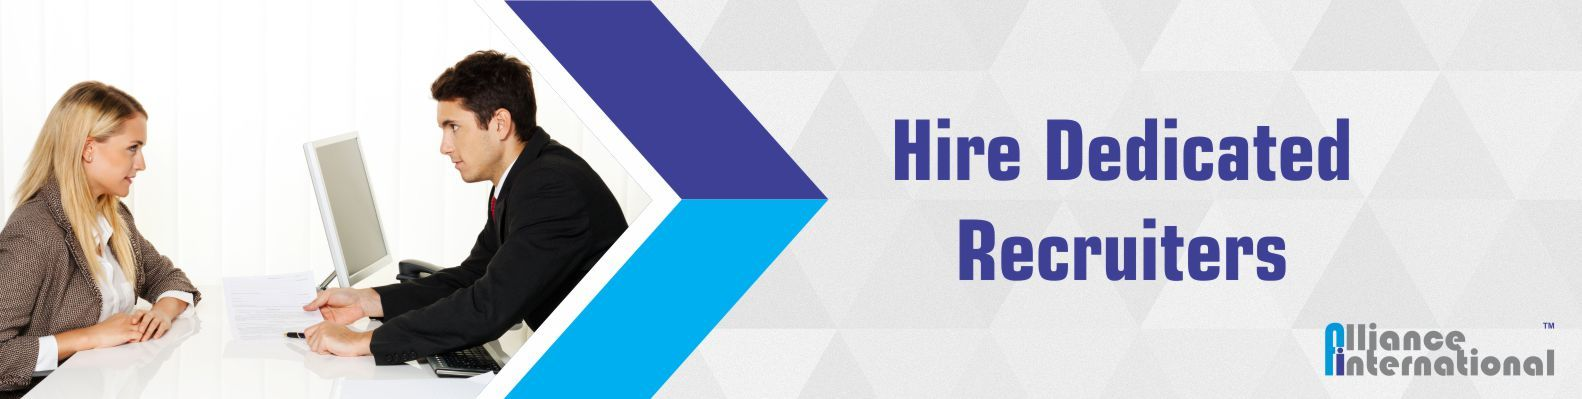 hire-dedicated-recruiters